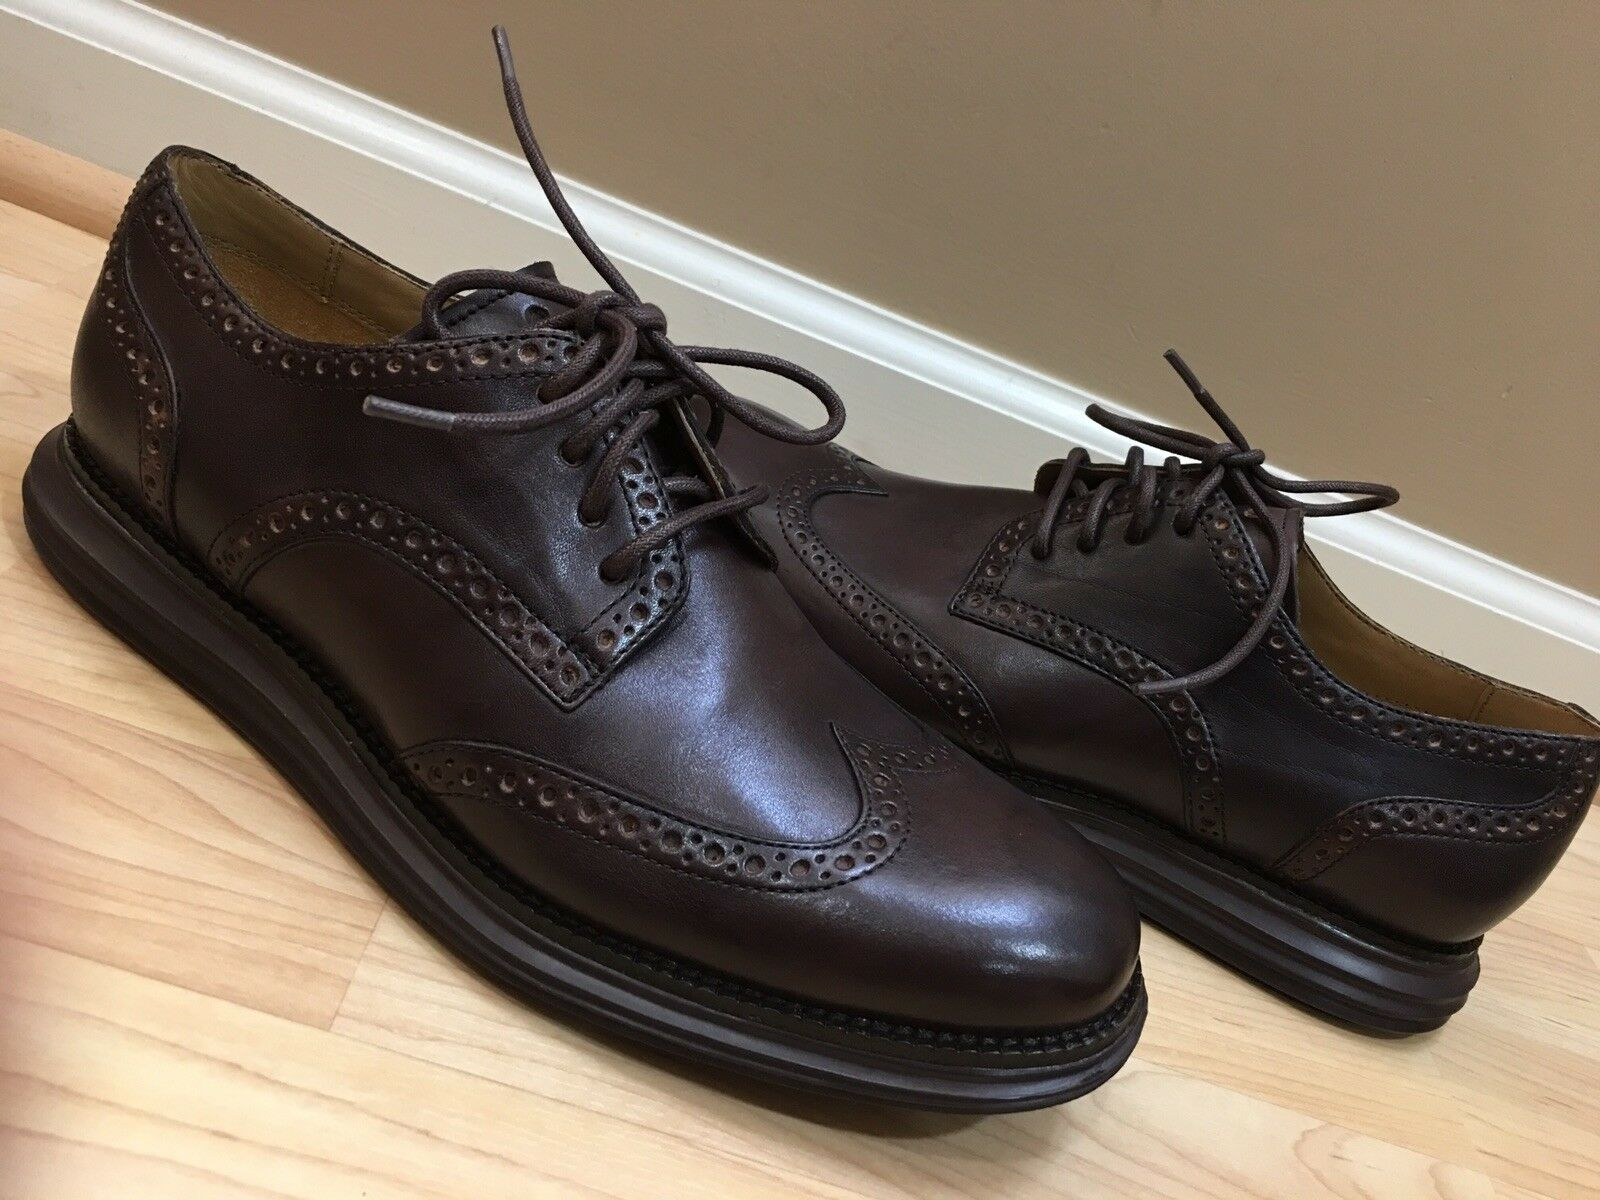 NEW NEW NEW COLE HAAN C12598 LUNARGRAND WINGTIP OXFORD DARK BROWN LEATHER 9 M AUTHENTIC 7acf7f